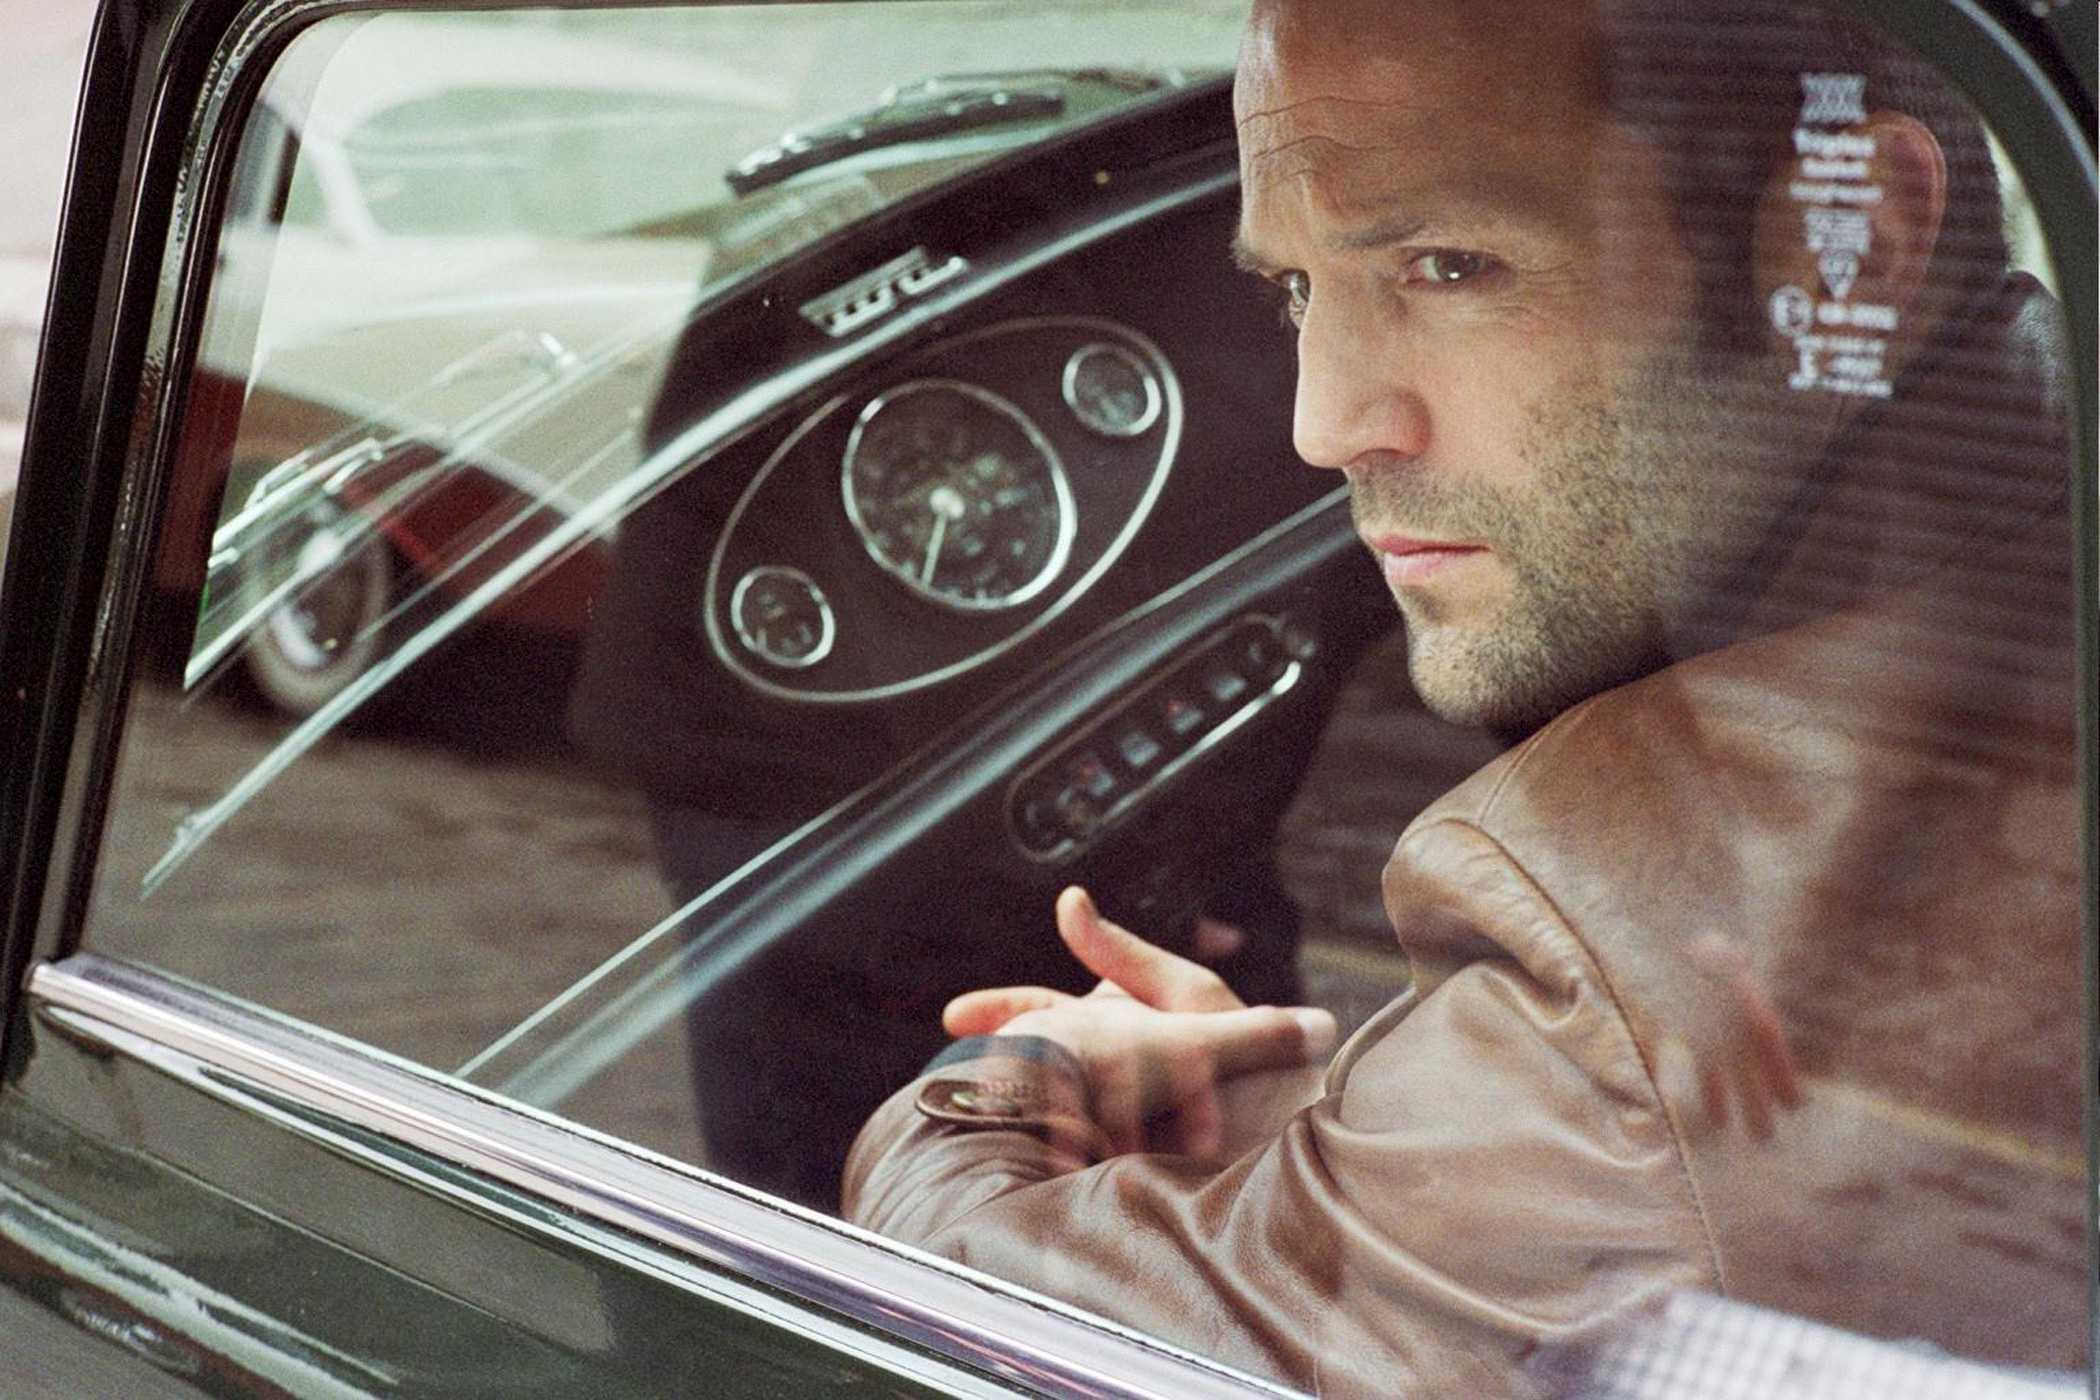 jason-statham-stars-in-the-bank-job_2100x1400_20222